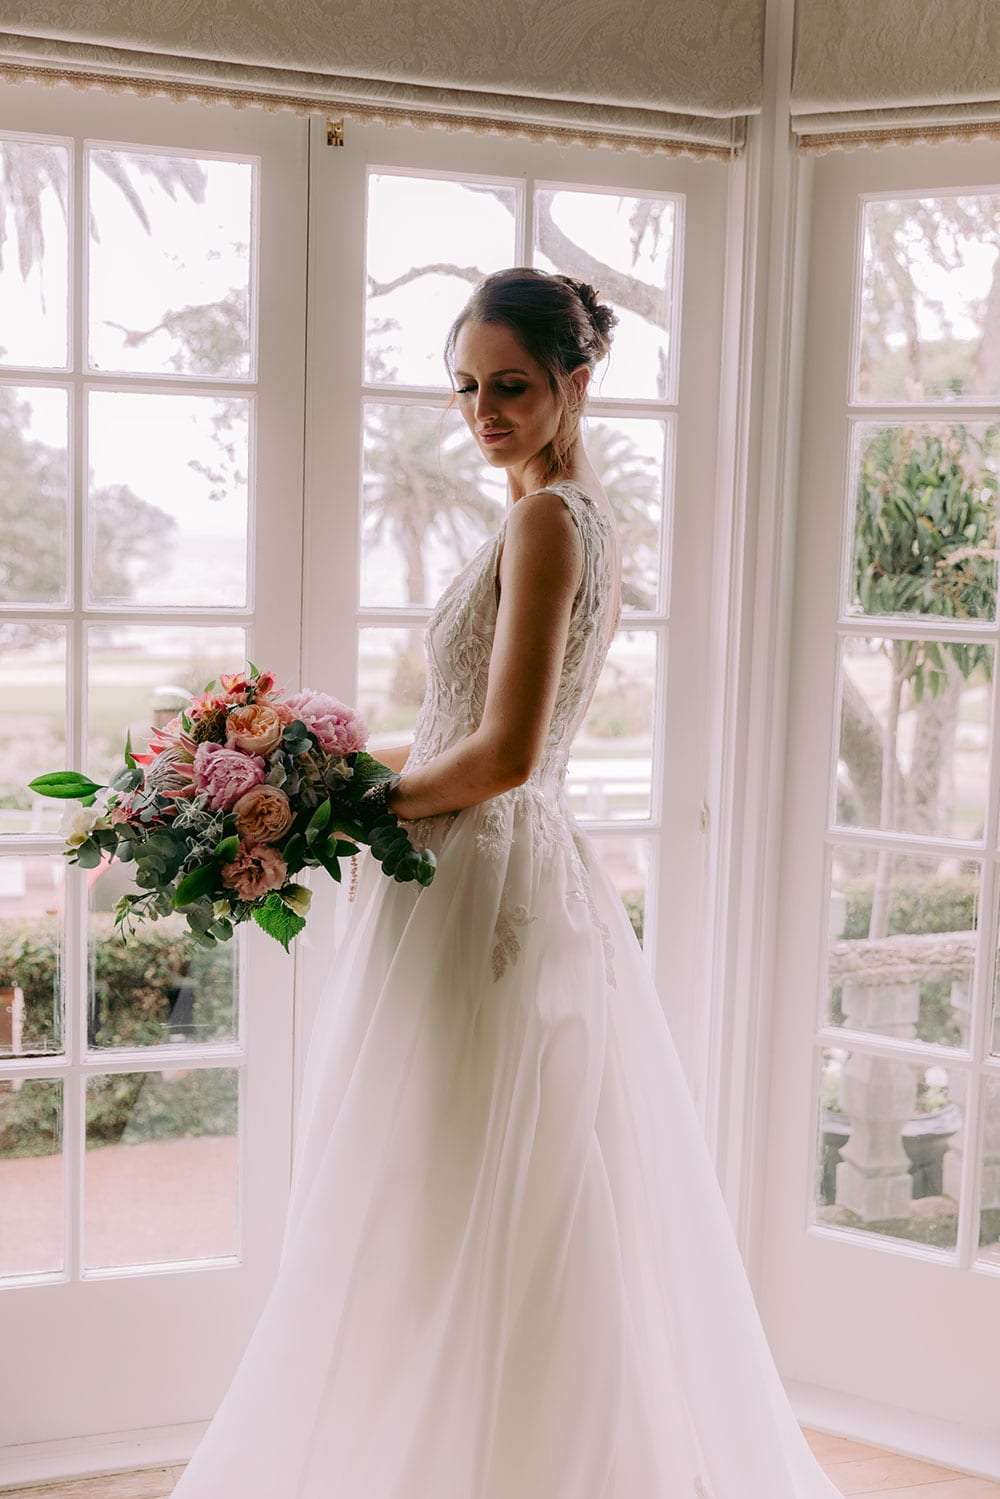 Rema Wedding gown from Vinka Design - This wedding dress has a bold design with a feminine style. Layers of dreamy satin organza with deep folds that open to reveal a split, and structured lace bodice that tapers at the waist to accentuates the figure. Model wearing gown holding bouquet in beautiful light conservatory.